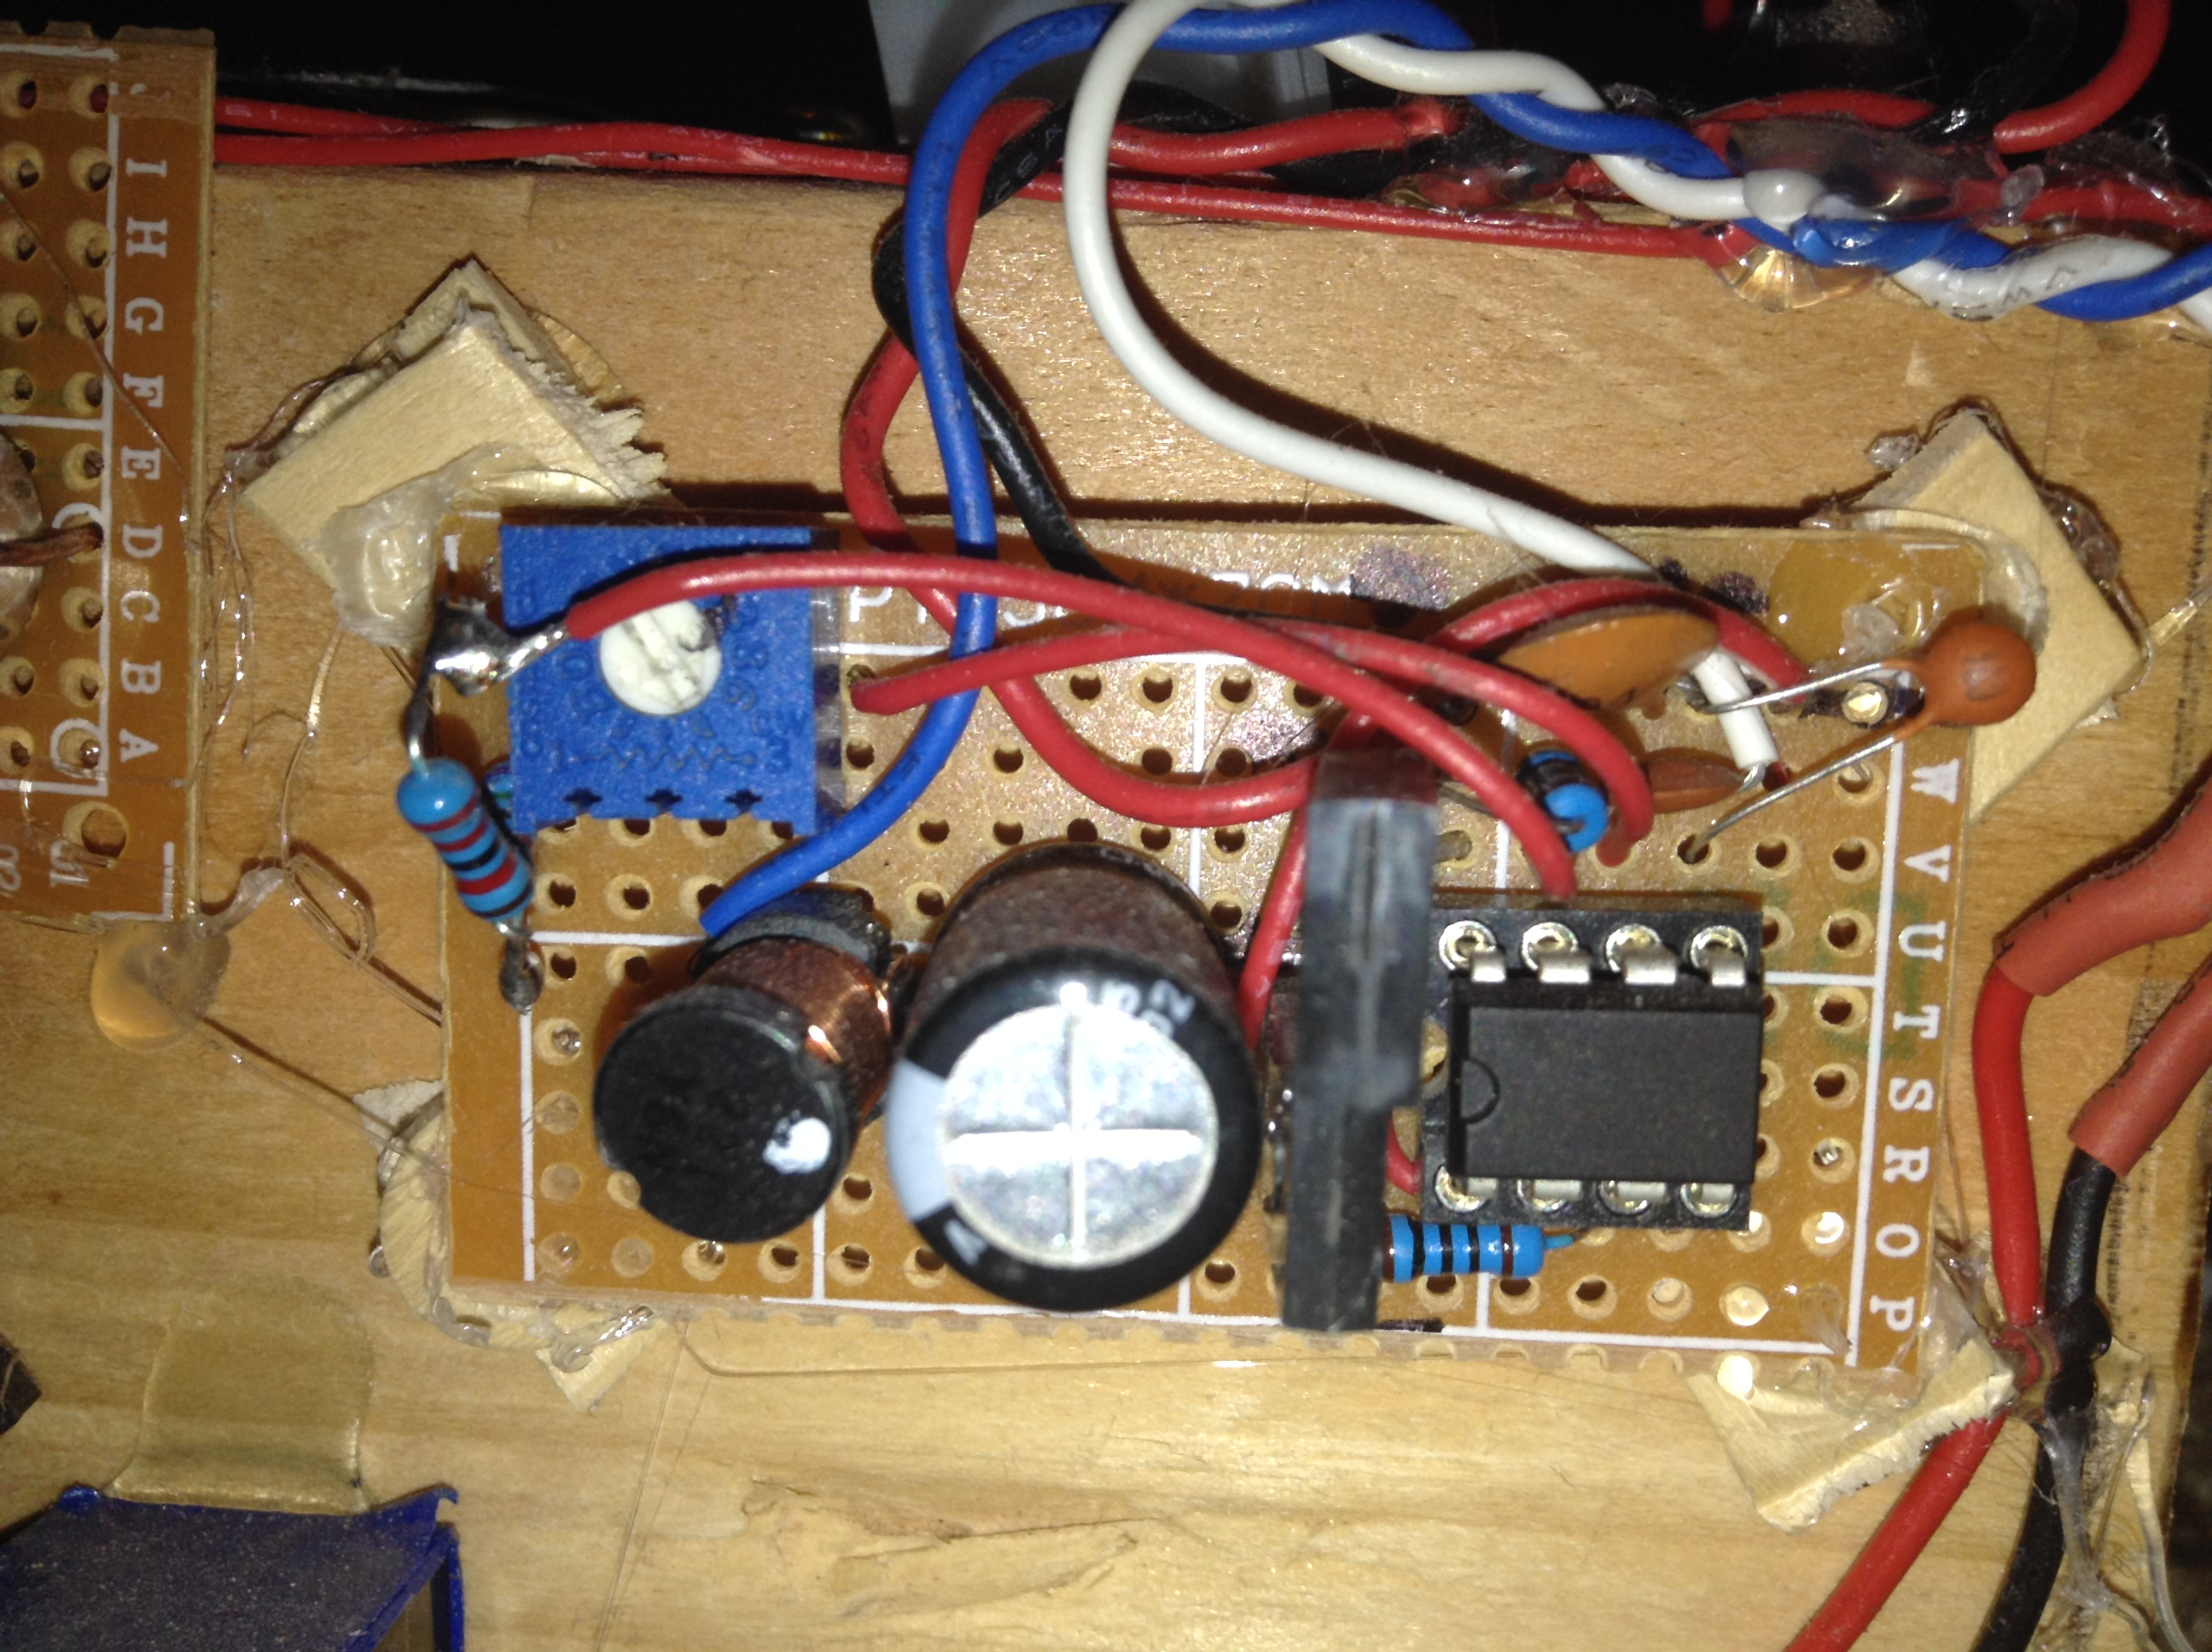 Picture of Assembling the Charge Circuit